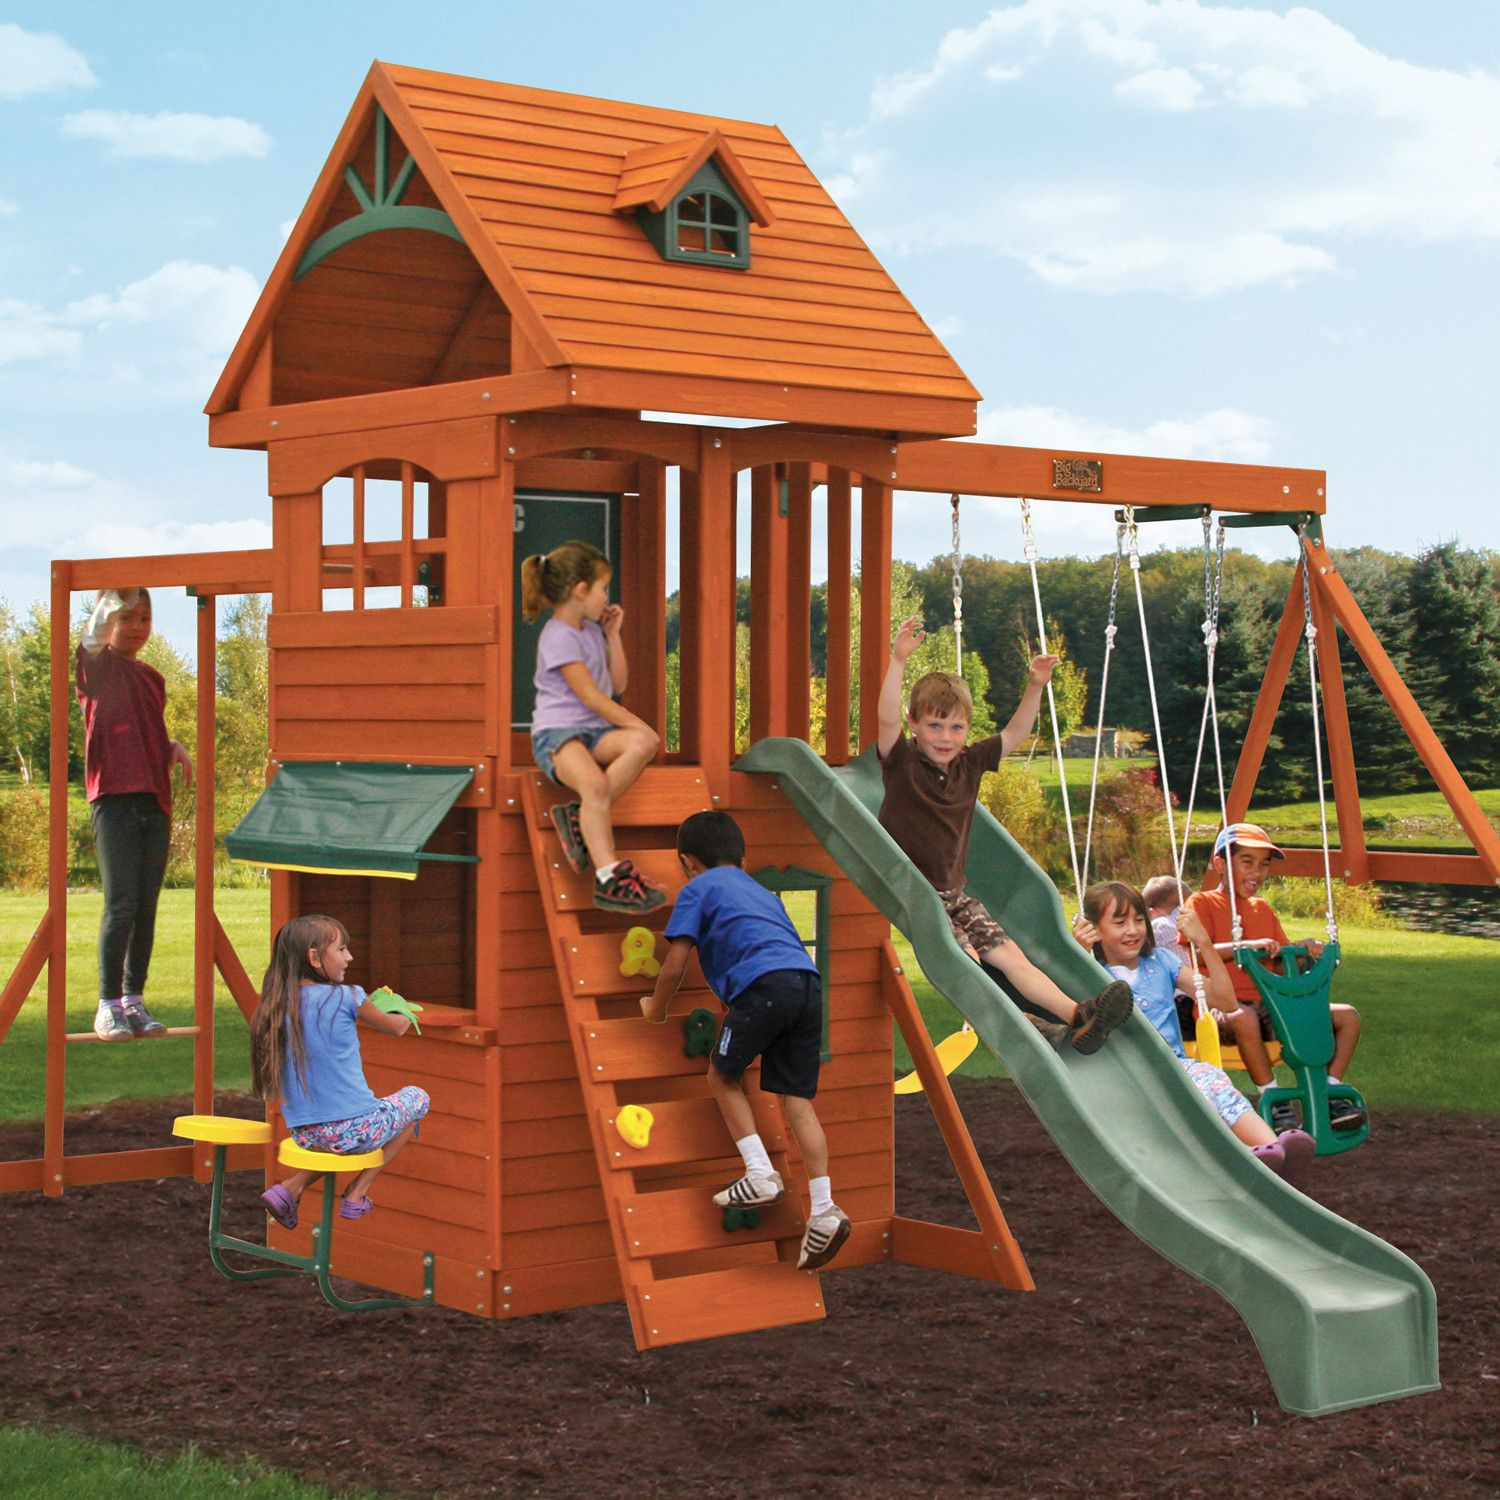 renovation set our house we costco lifetime pin match painted swingset swing to from playset